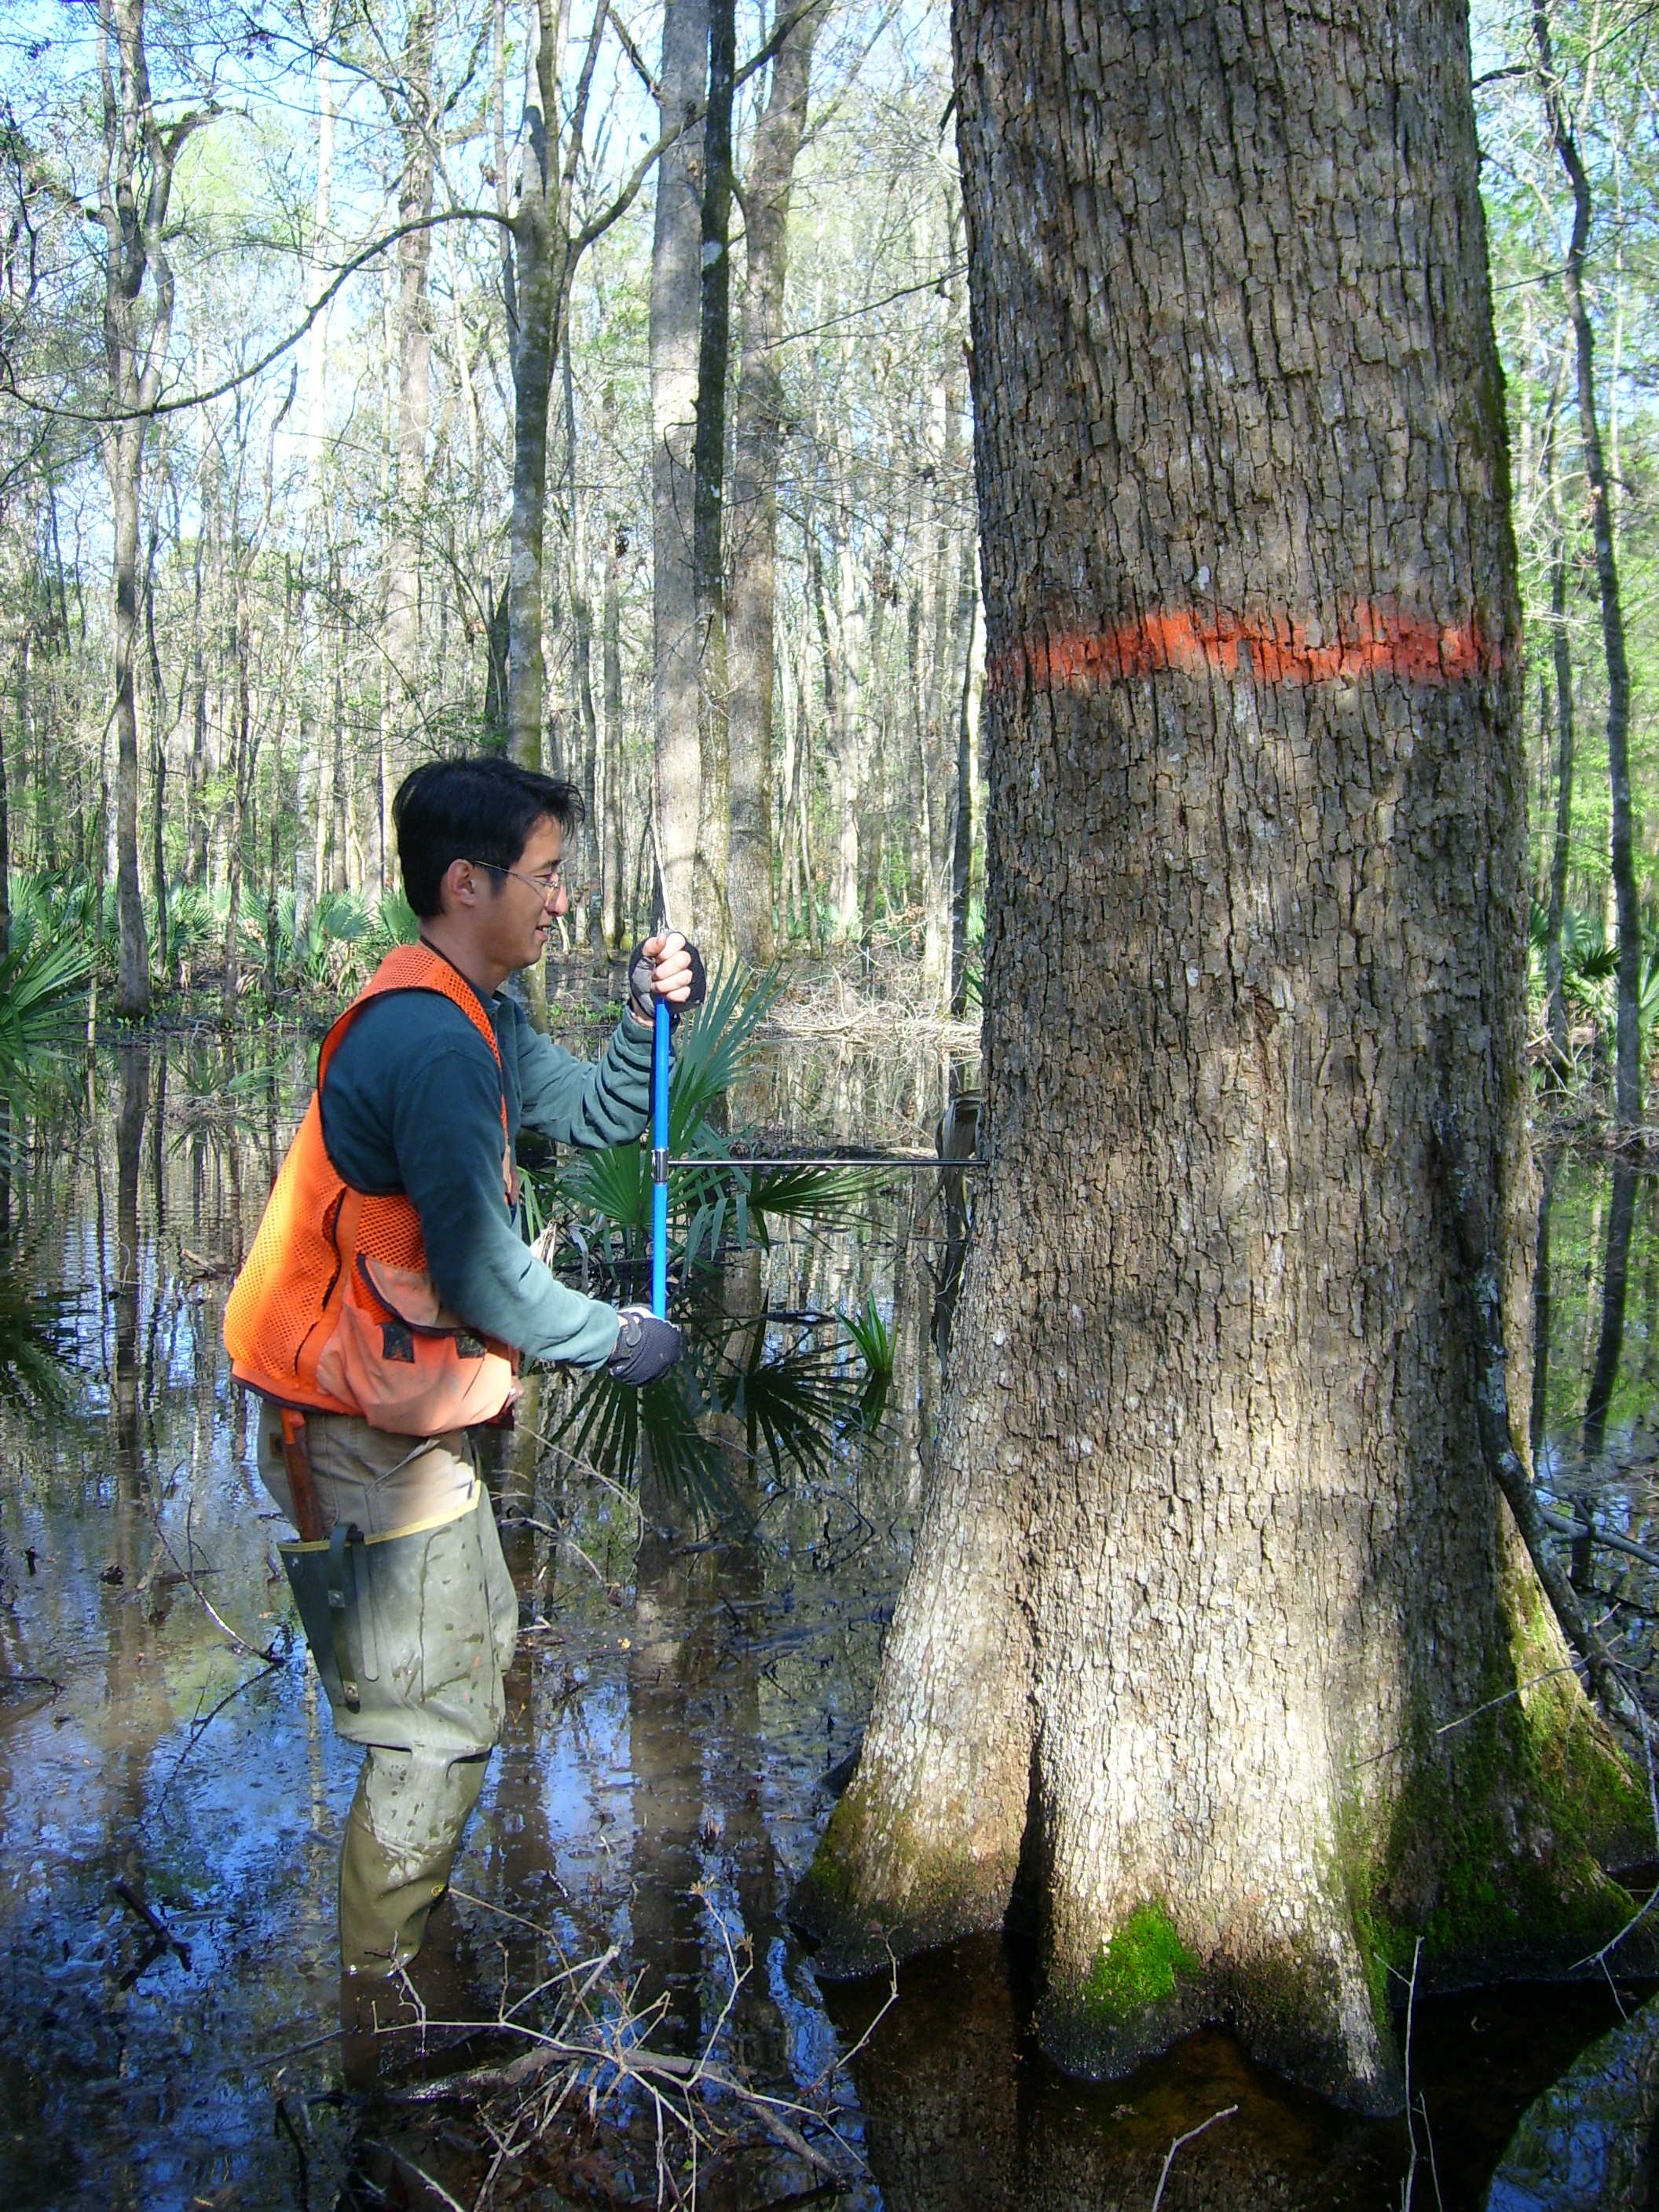 Hugo Gee (Ph.D. student; King) coring a tree at Bayou Cocodrie National Wildlife Refuge.  Tree cores will provide important information about stand development patterns and tree growth.